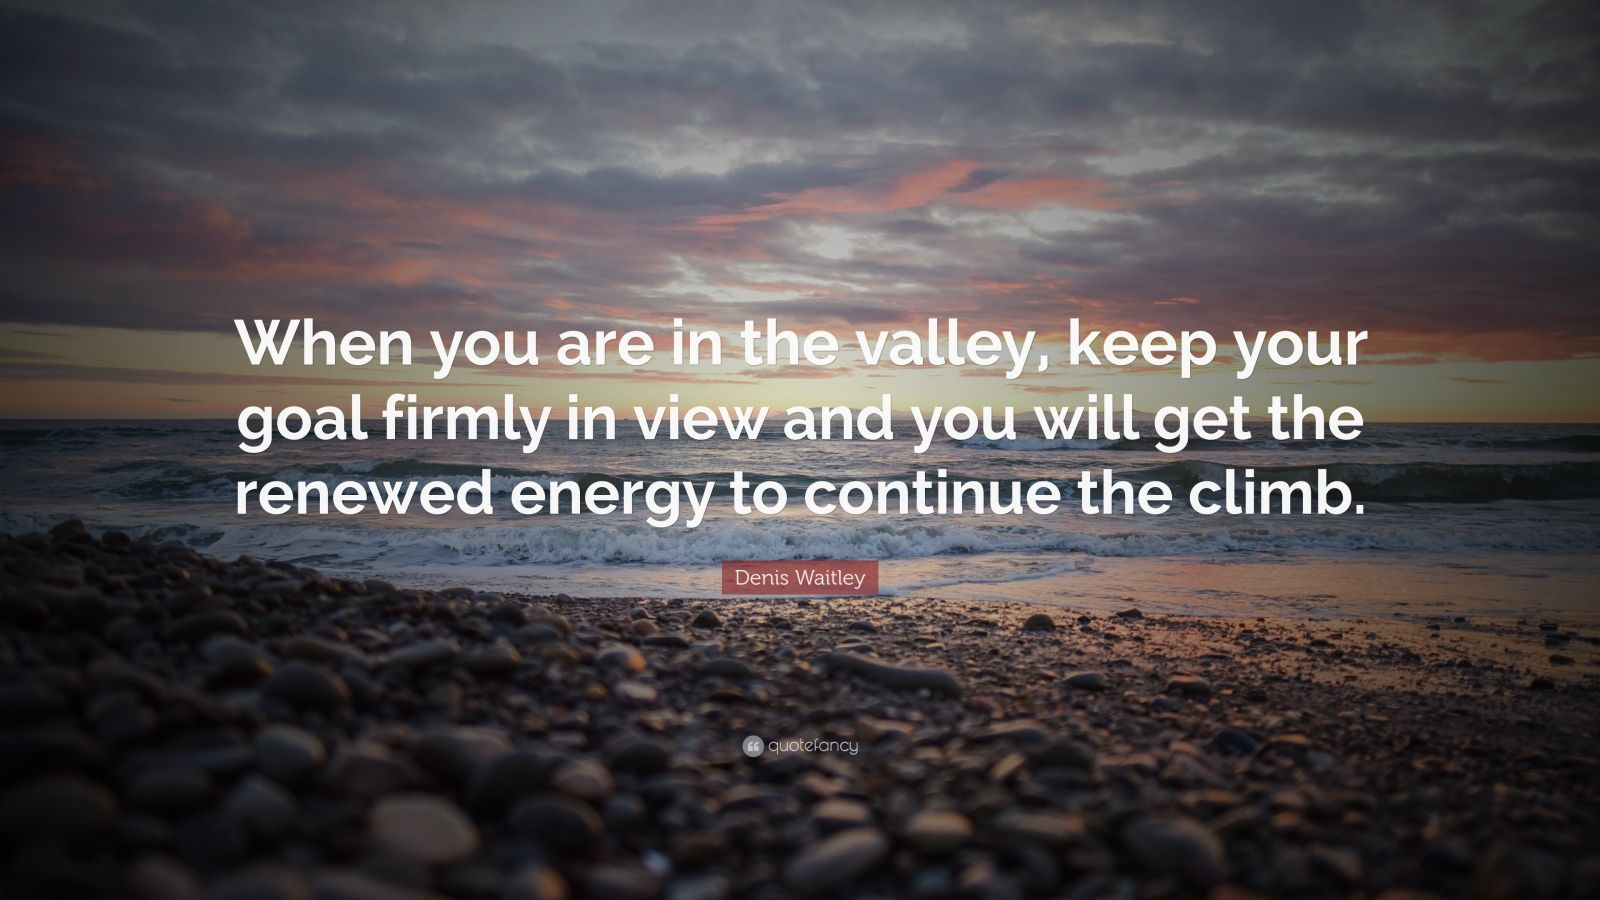 """Denis Waitley Quote: """"When you are in the valley, keep your goal firmly in view and you will get the renewed energy to continue the climb."""""""